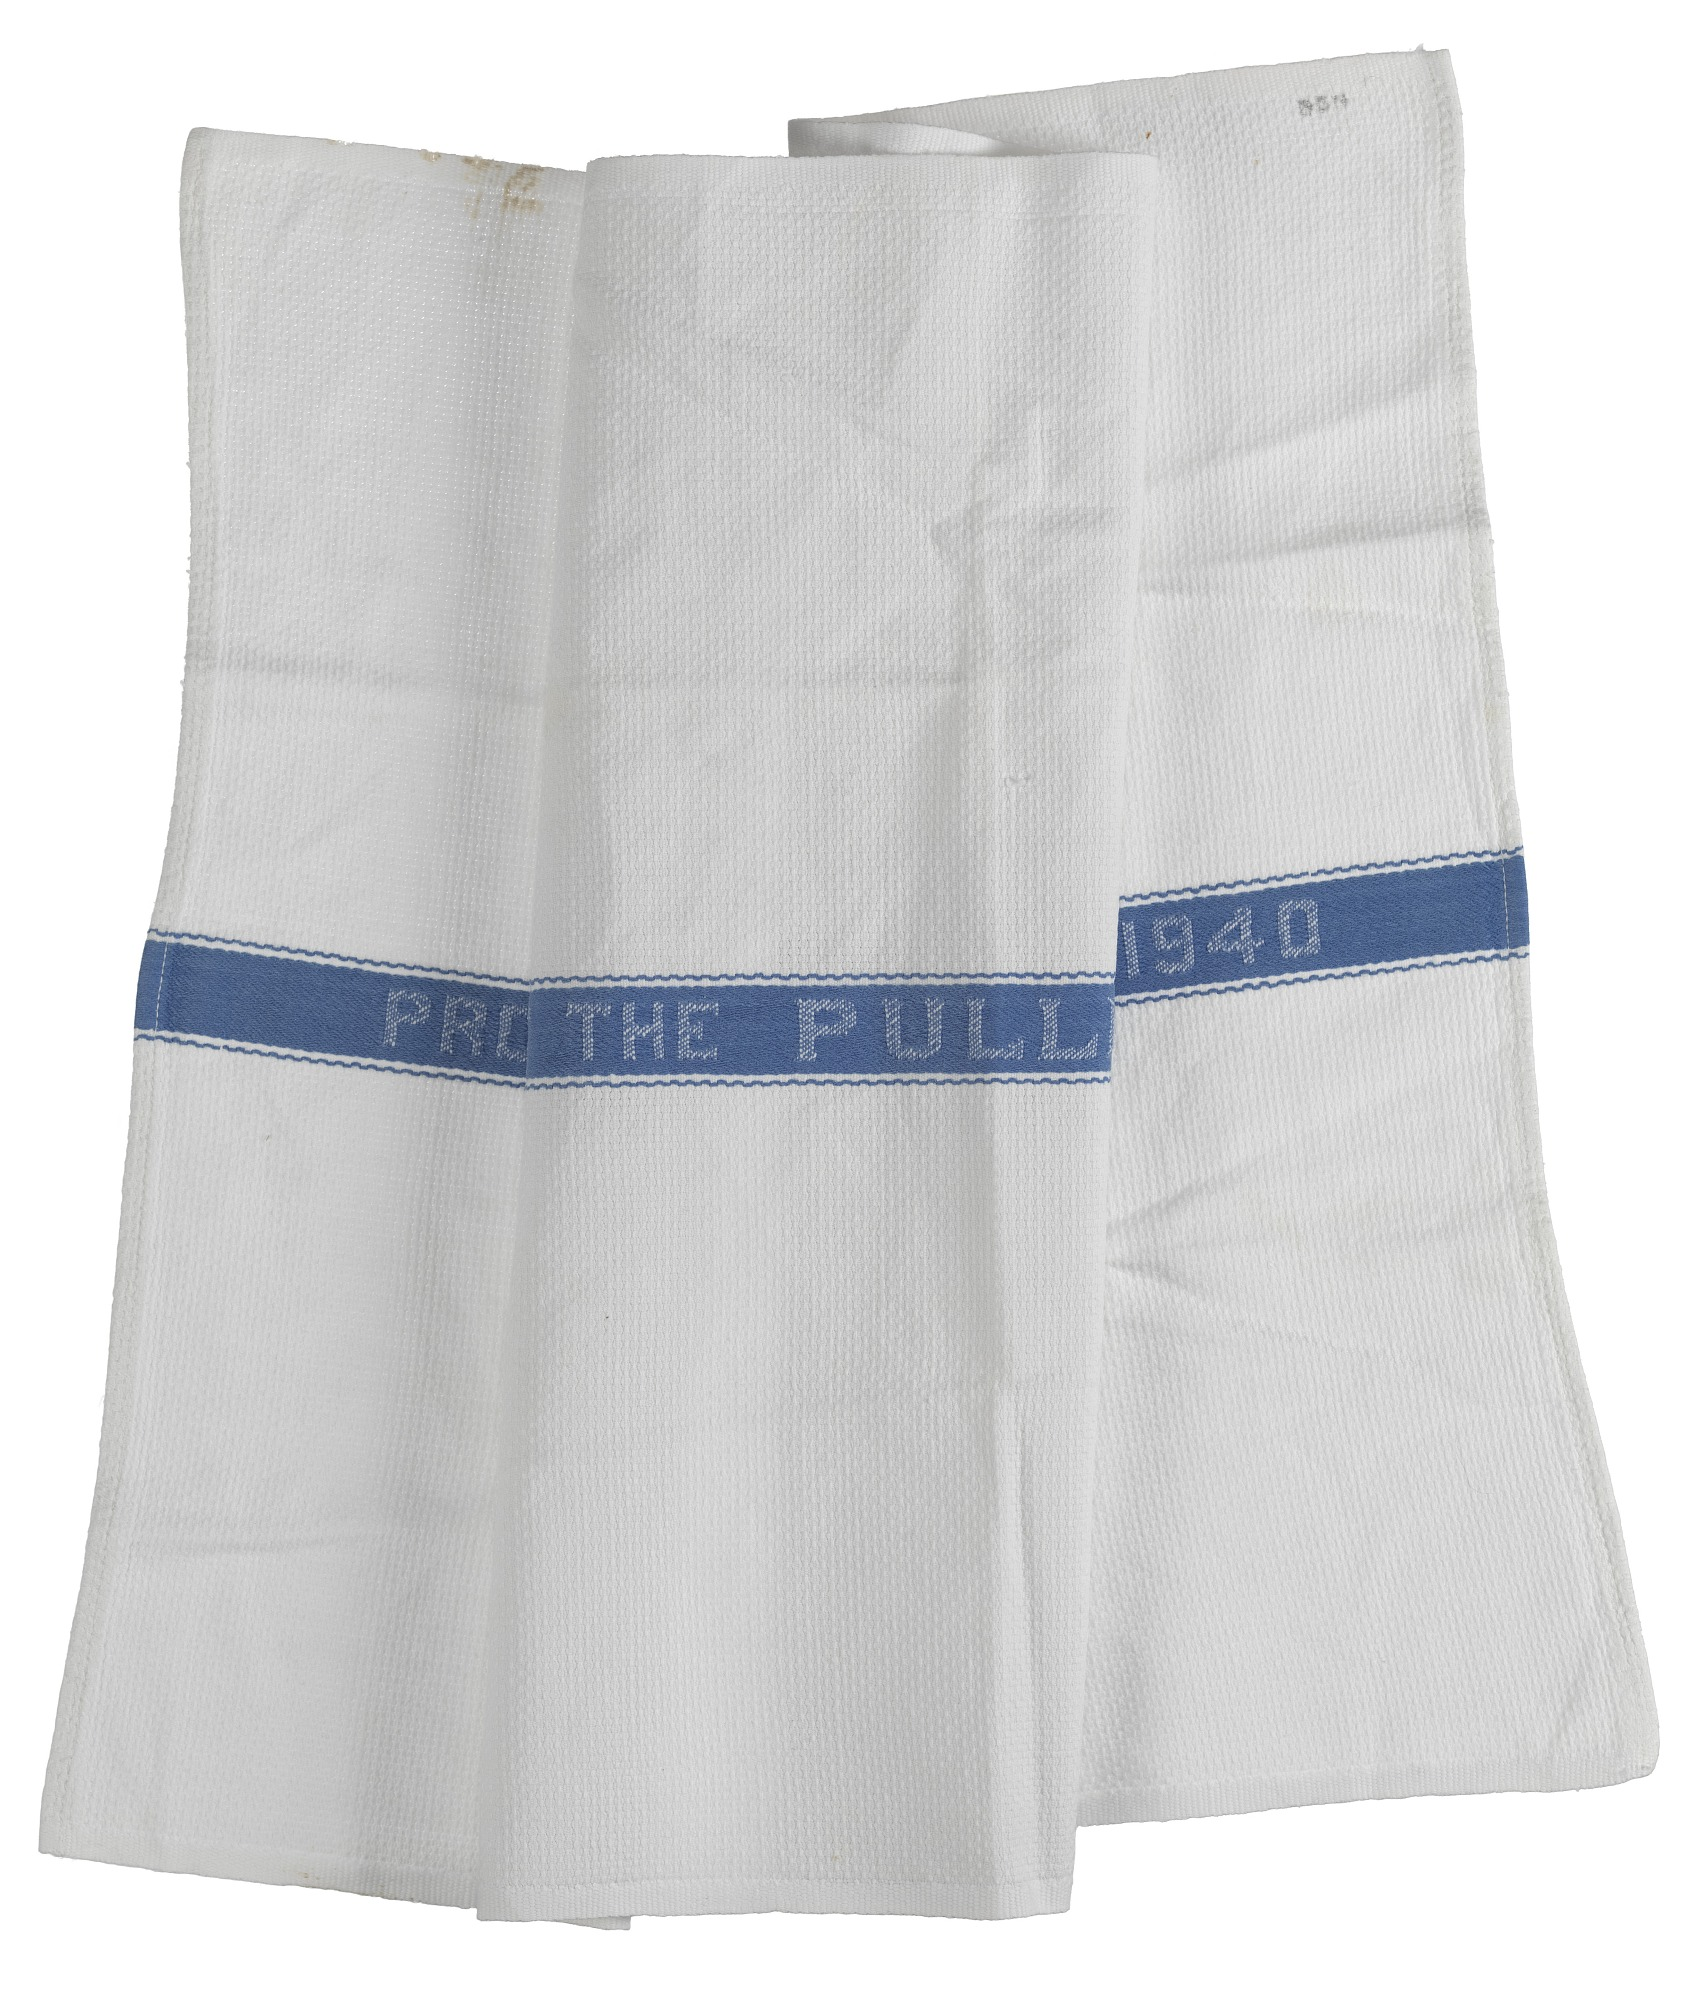 images for Towel used by the Pullman Company